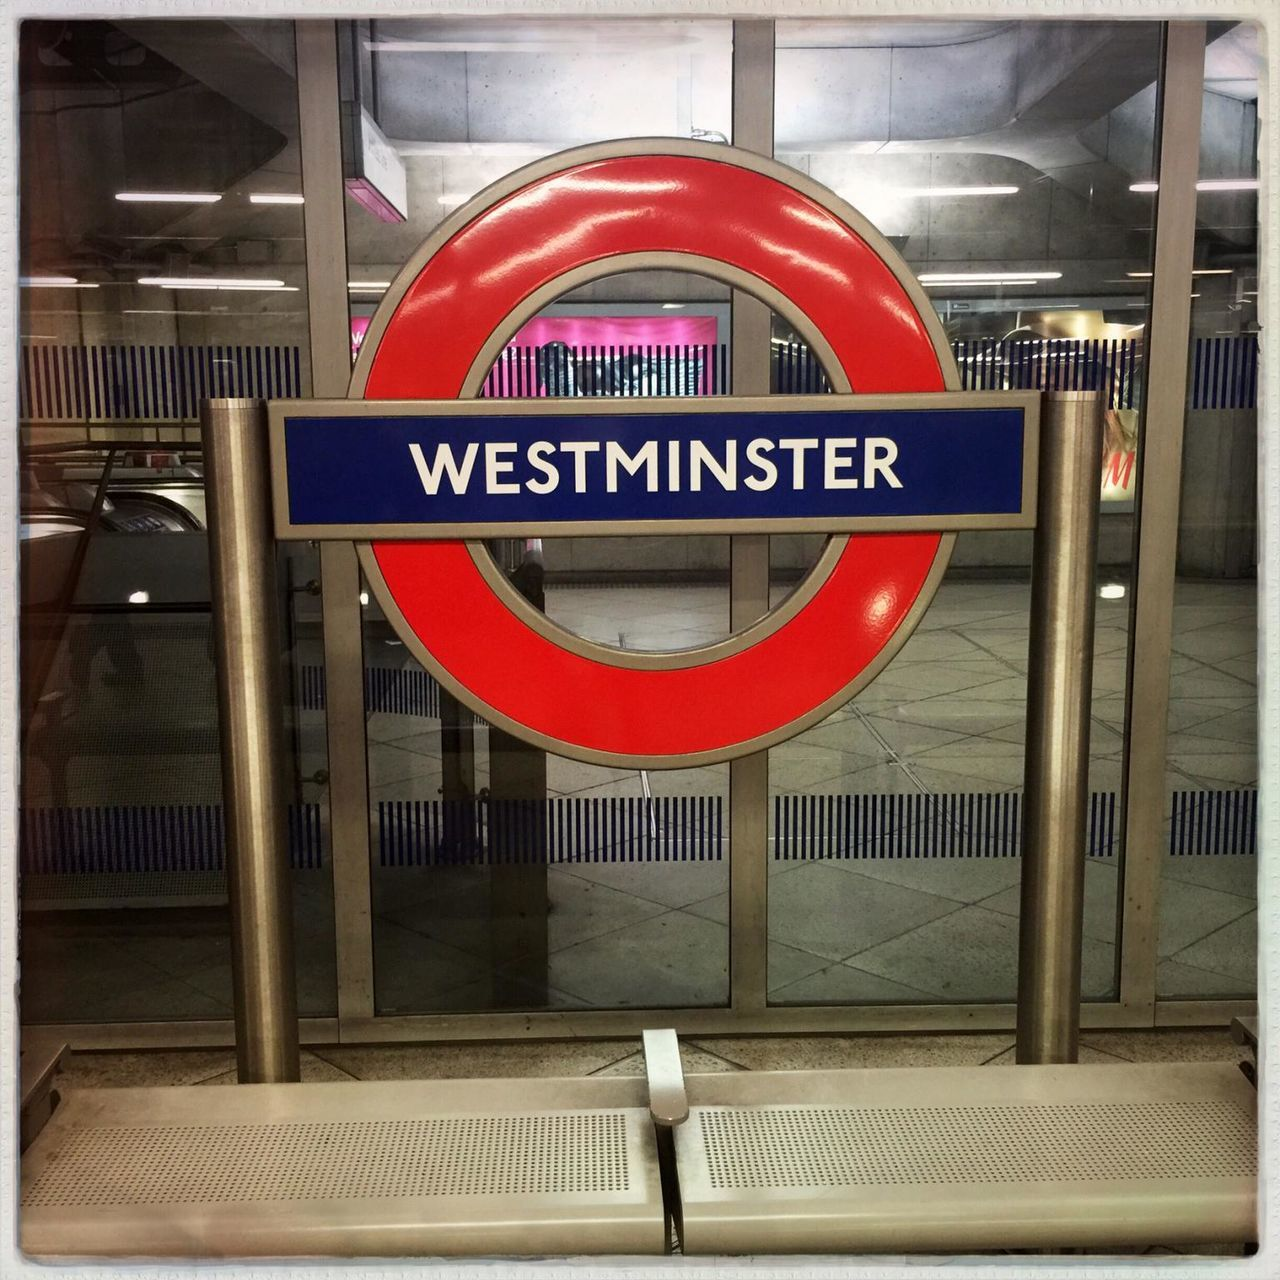 Communication Geometry Guidance Information Information Sign London Metal Non-western Script Railing Road Sign Sign Staircase Steps Steps And Staircases Subway Symbol Symmetry Text Underground Vertical Symmetry Wall Western Script Westminster Westminster Subway